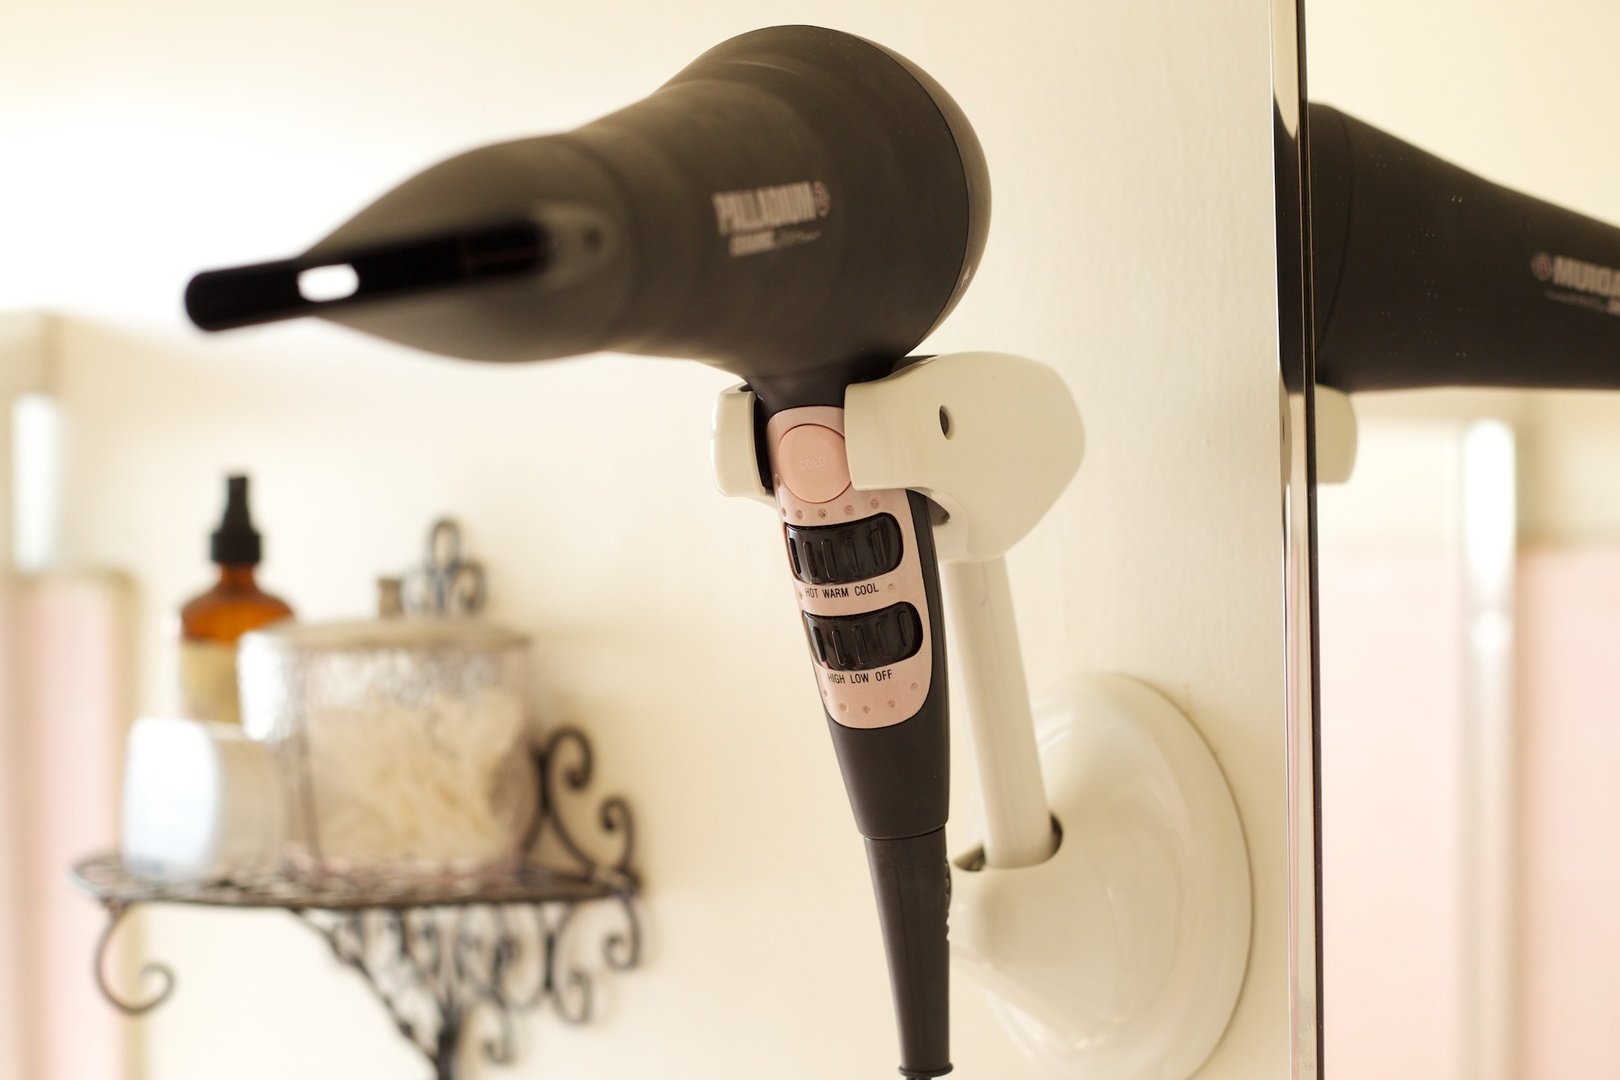 Hands Free Hair Dryer Mount 16 Hands Free Hair Dryer Mount